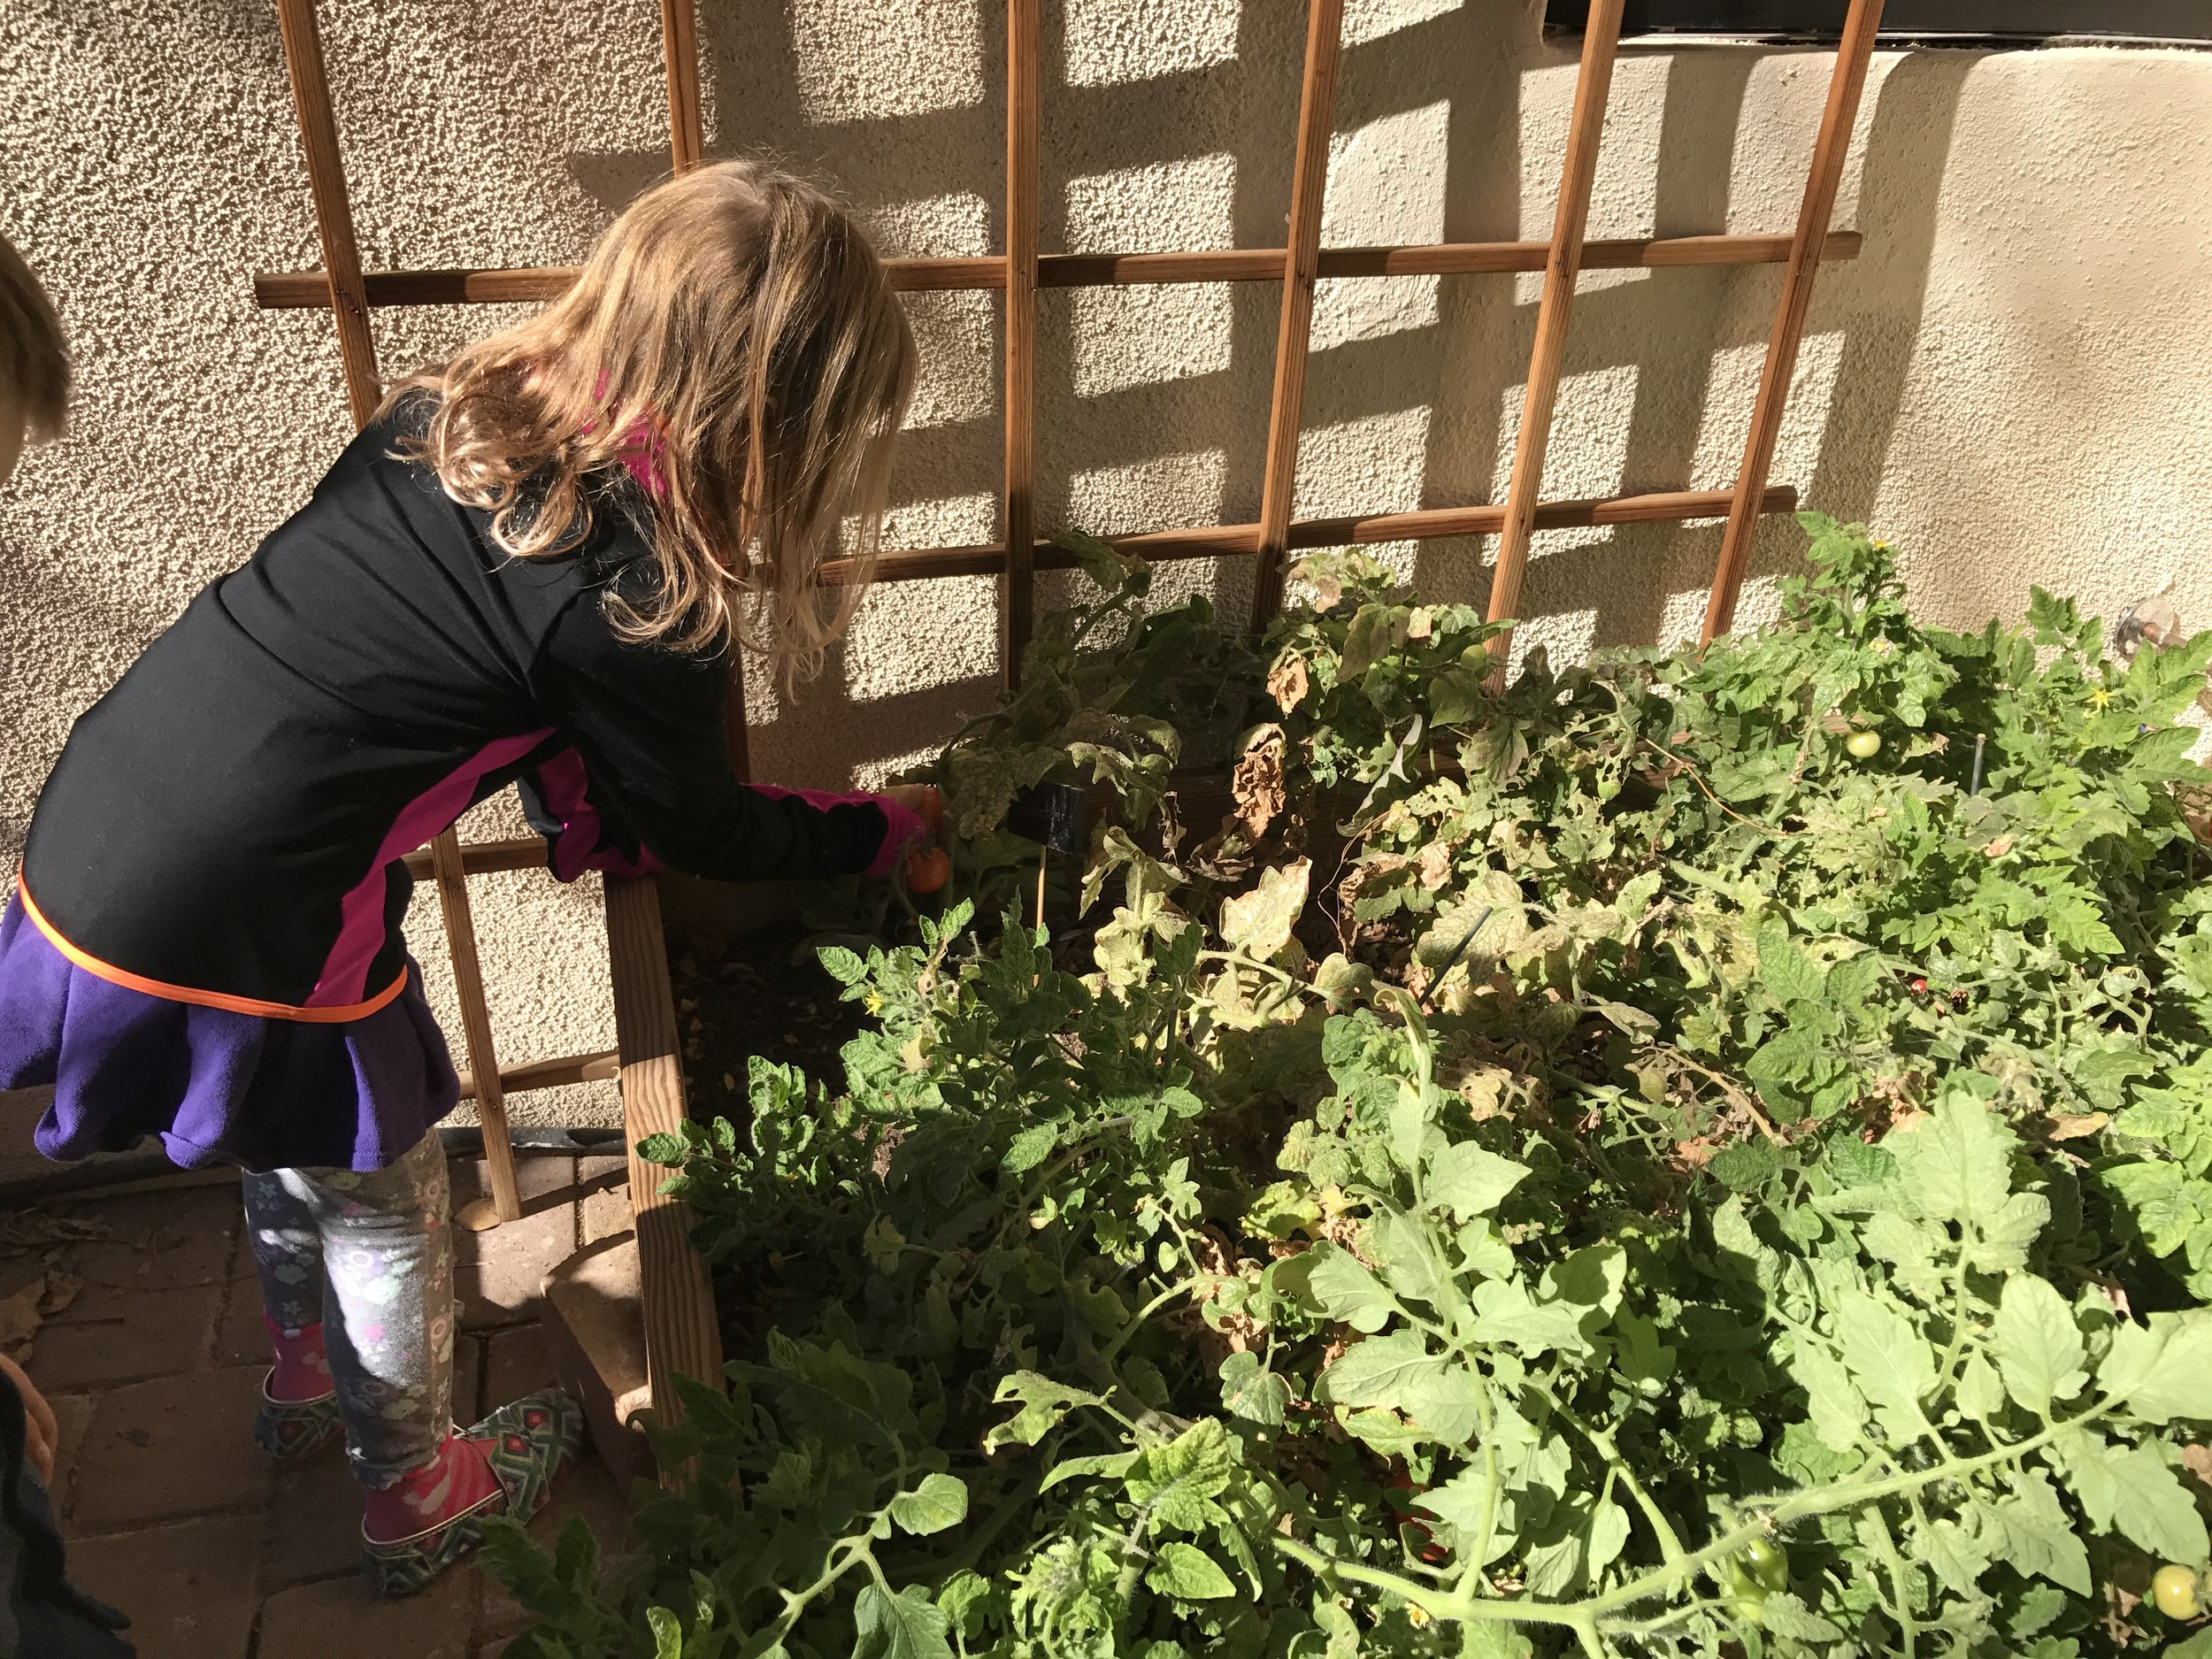 Visiting Our Community Garden